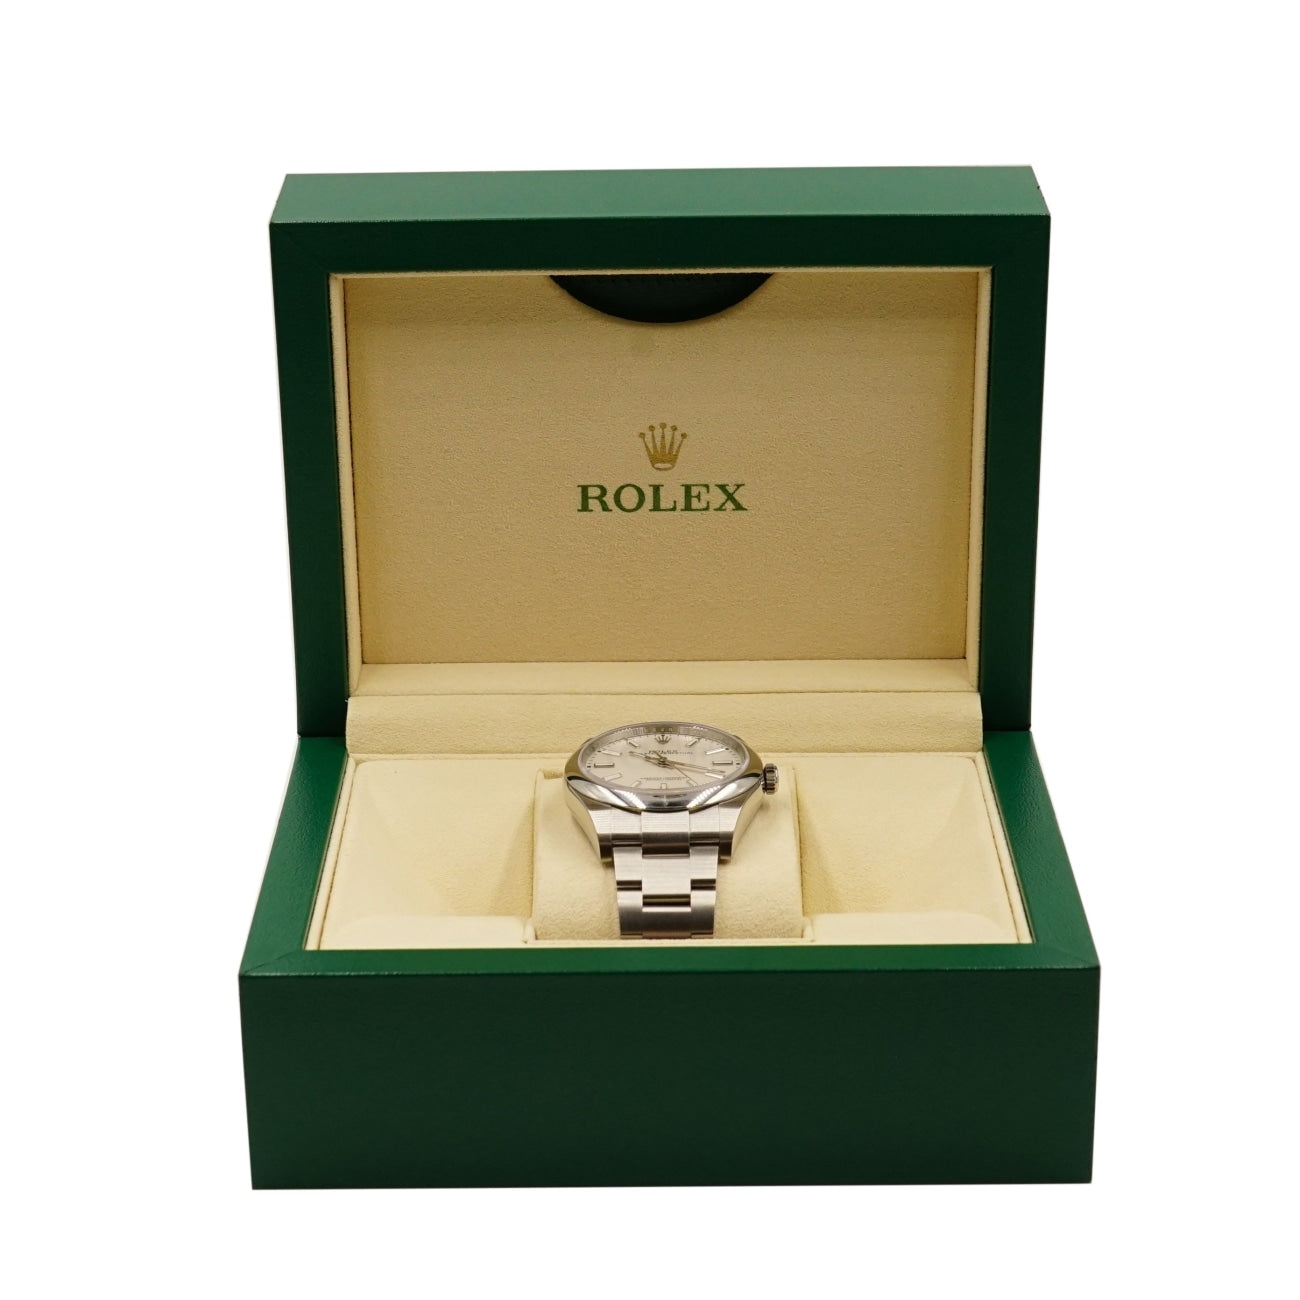 Pre-Owned Rolex Watches - Oyster Perpetual 114300 | Manfredi Jewels